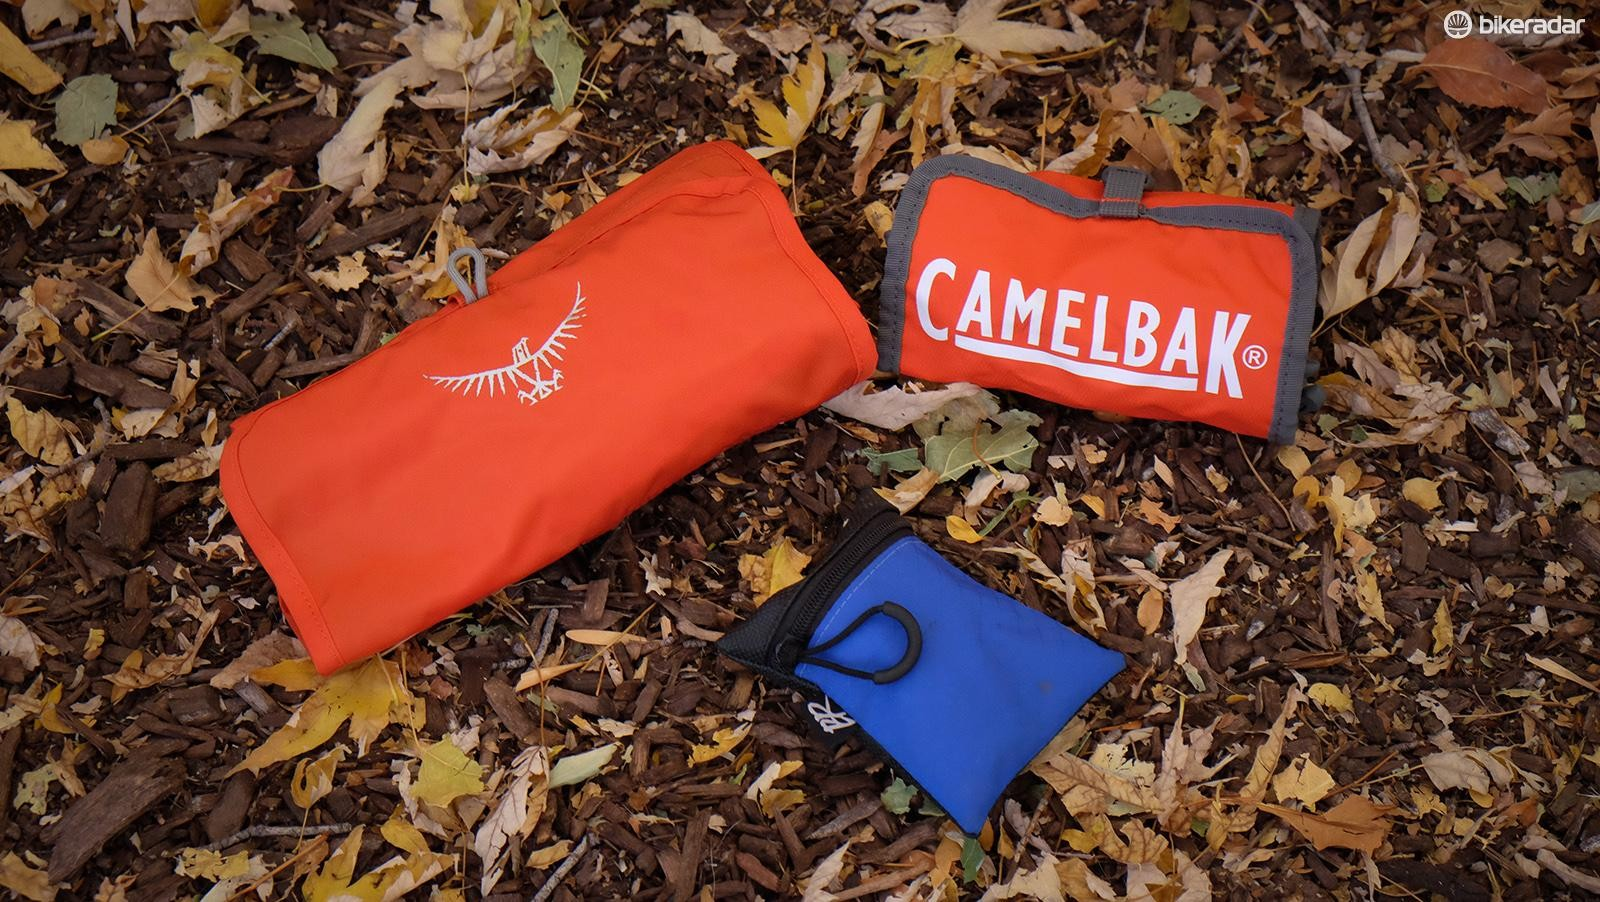 Many packs come with tool rolls that keep all your repair items organized. If yours doesn't, consider using a small bag or pouch to keep track of smaller bits of kit